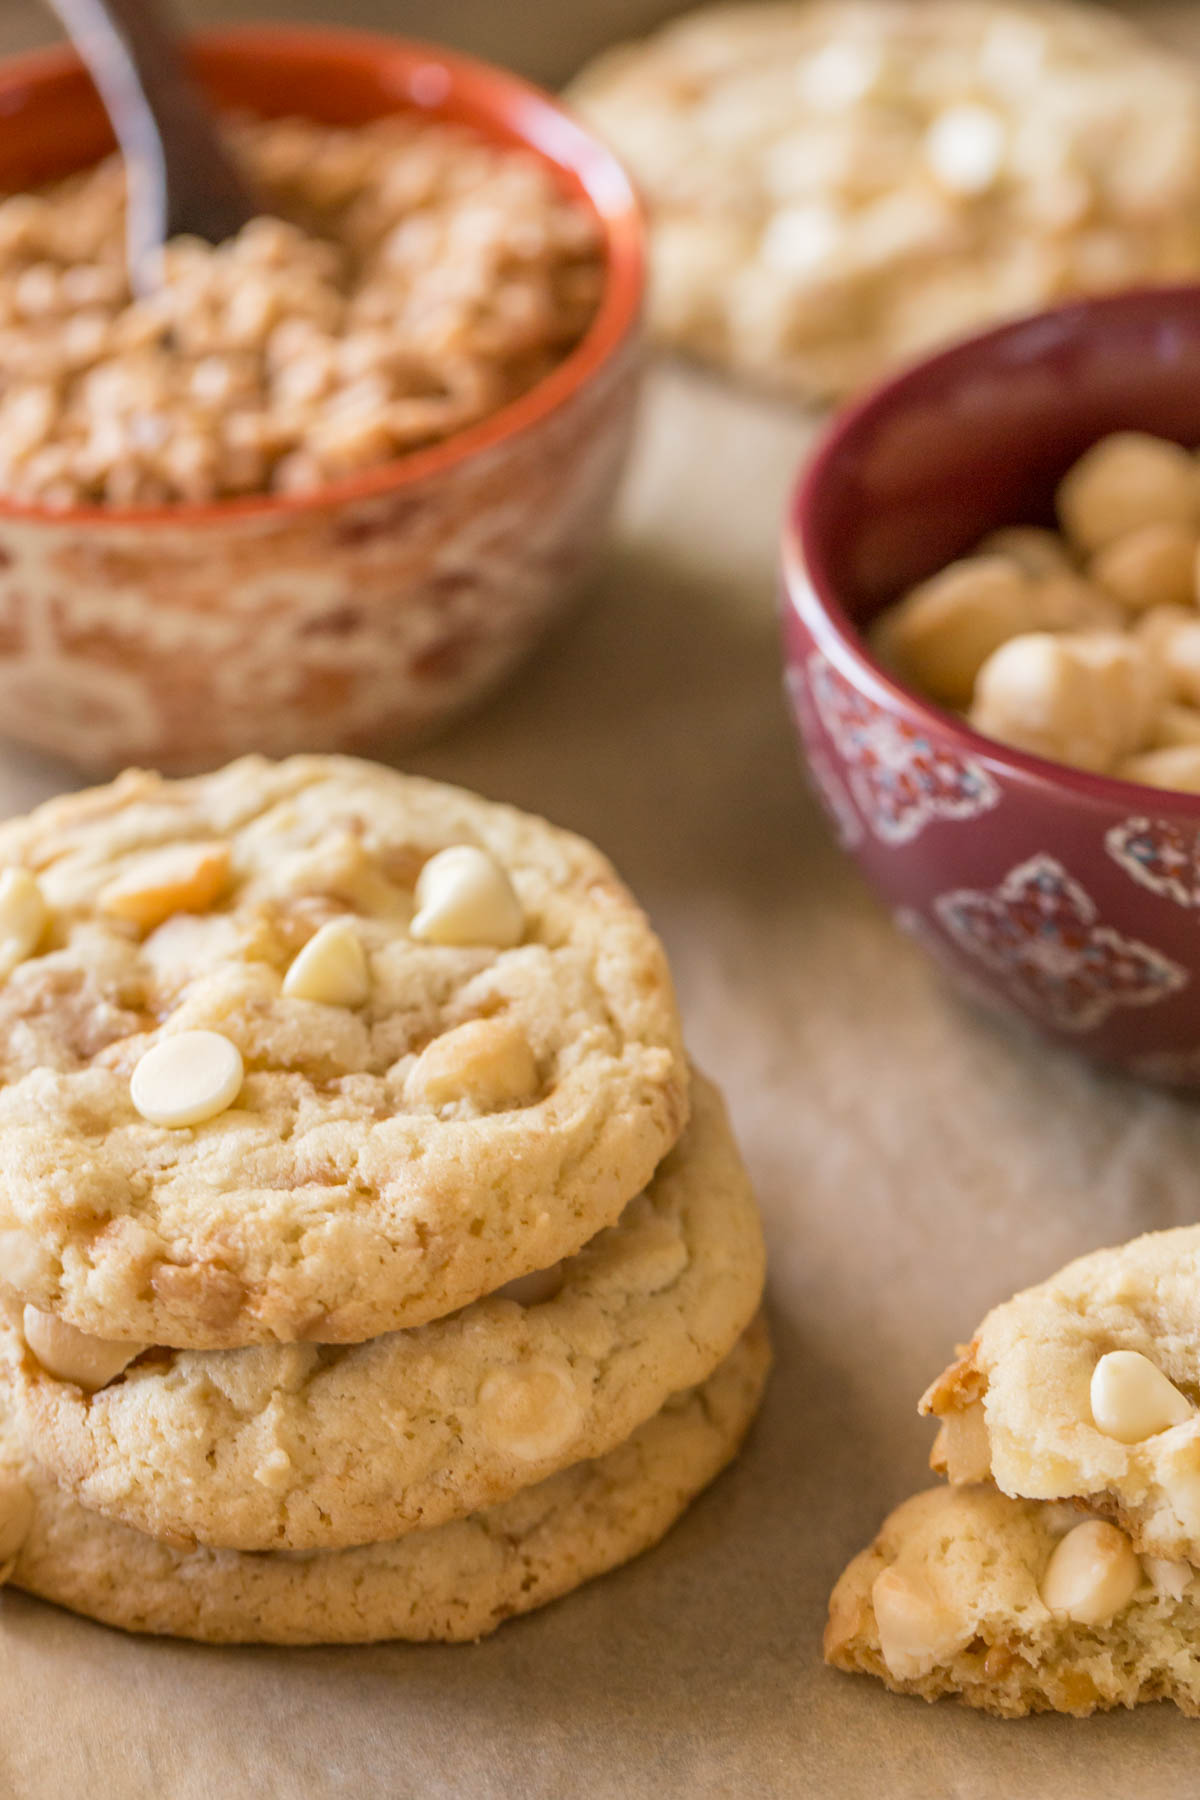 Three Buttery Toffee White Chocolate Chip Macadamia Nut Cookies stacked on top of each other, with a bowl of roasted salted macadamia nuts and a bowl of toffee bits in the background.